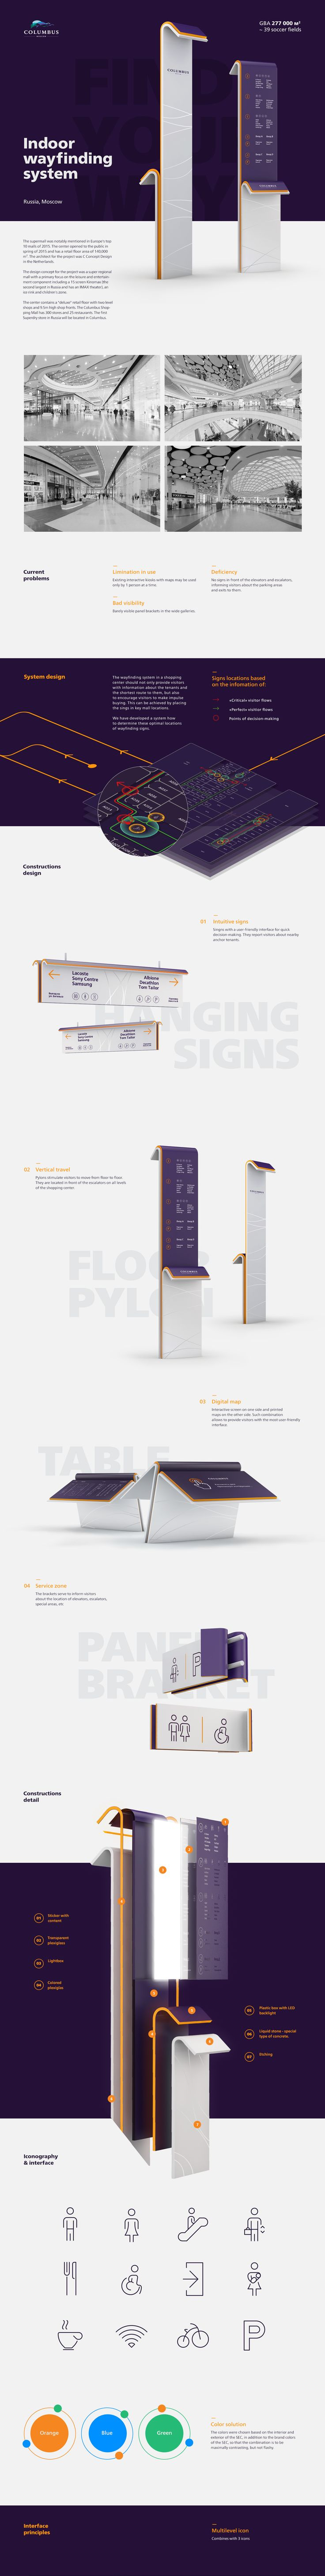 Columbus. Wayfinding system on Behance